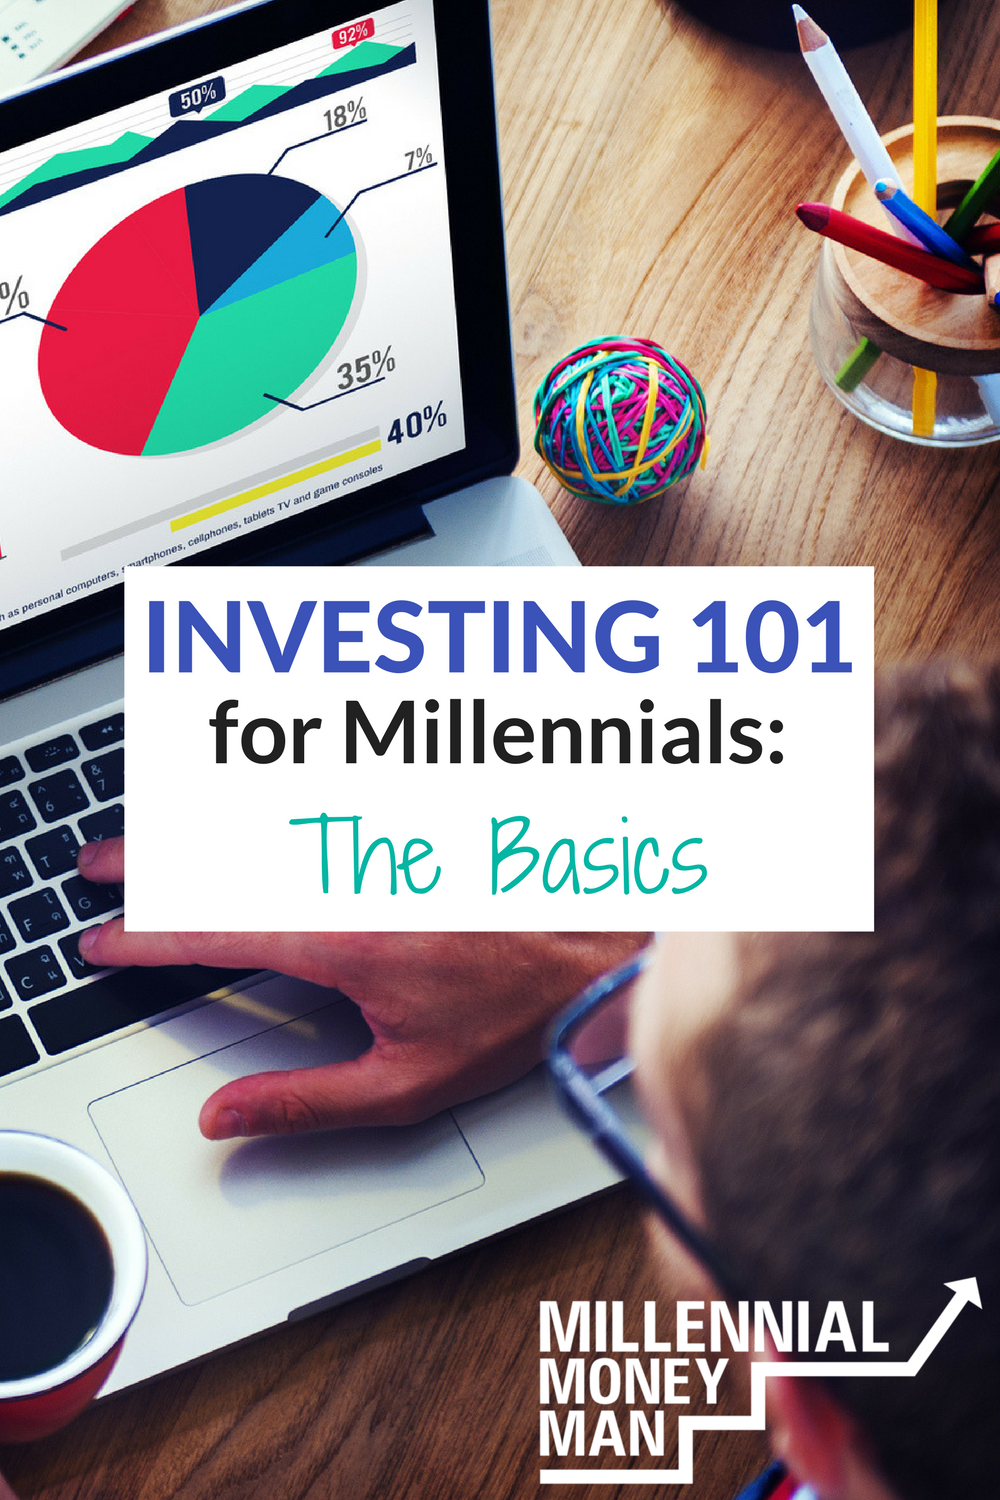 Are you thinking about investing your money, but don't know how to start? This post breaks down 5 investment options that can get you started as a beginner.